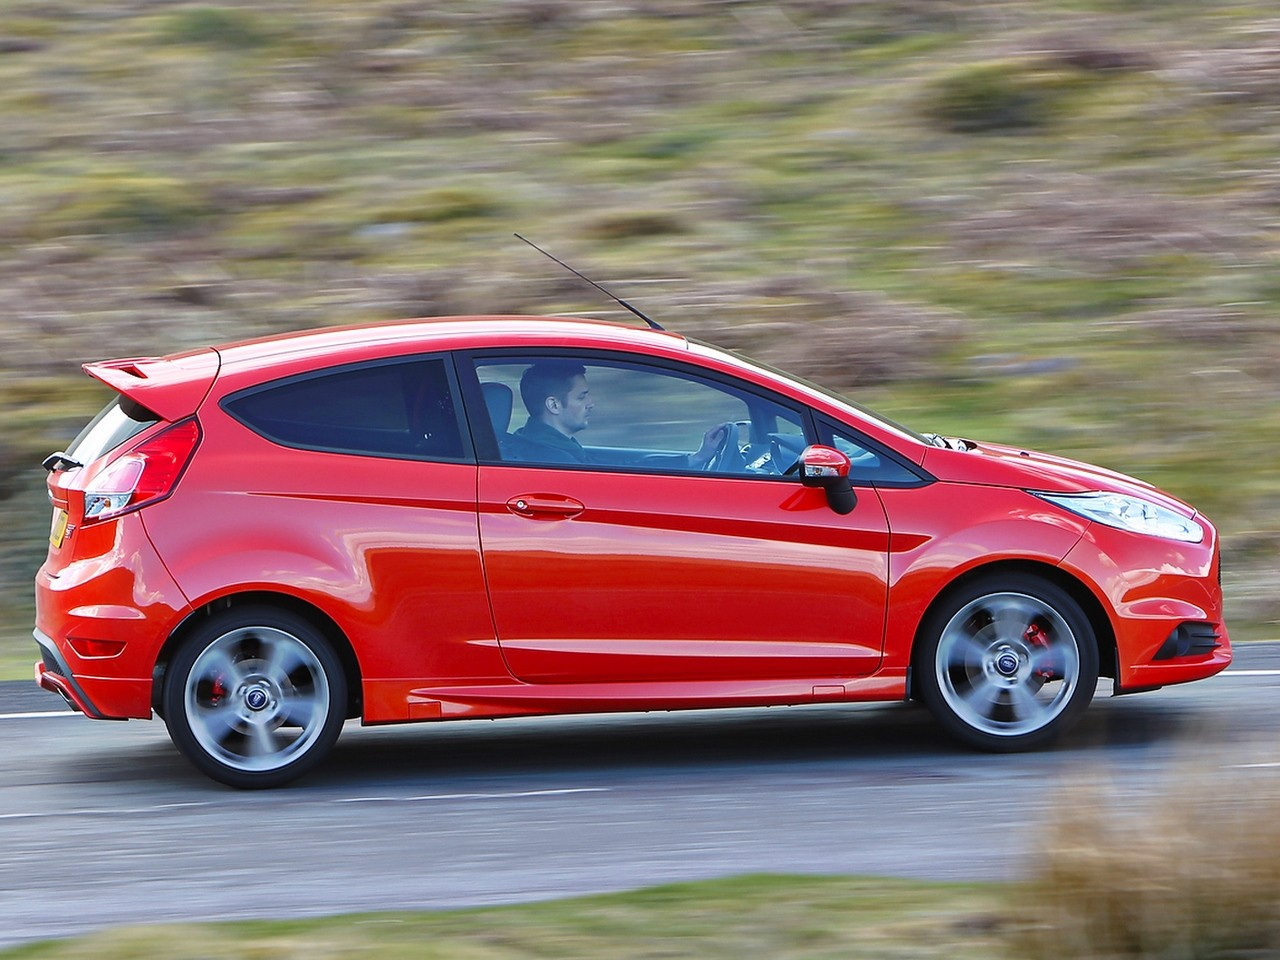 Focus St Towing >> FORD Fiesta ST specs & photos - 2012, 2013, 2014, 2015, 2016, 2017, 2018 - autoevolution